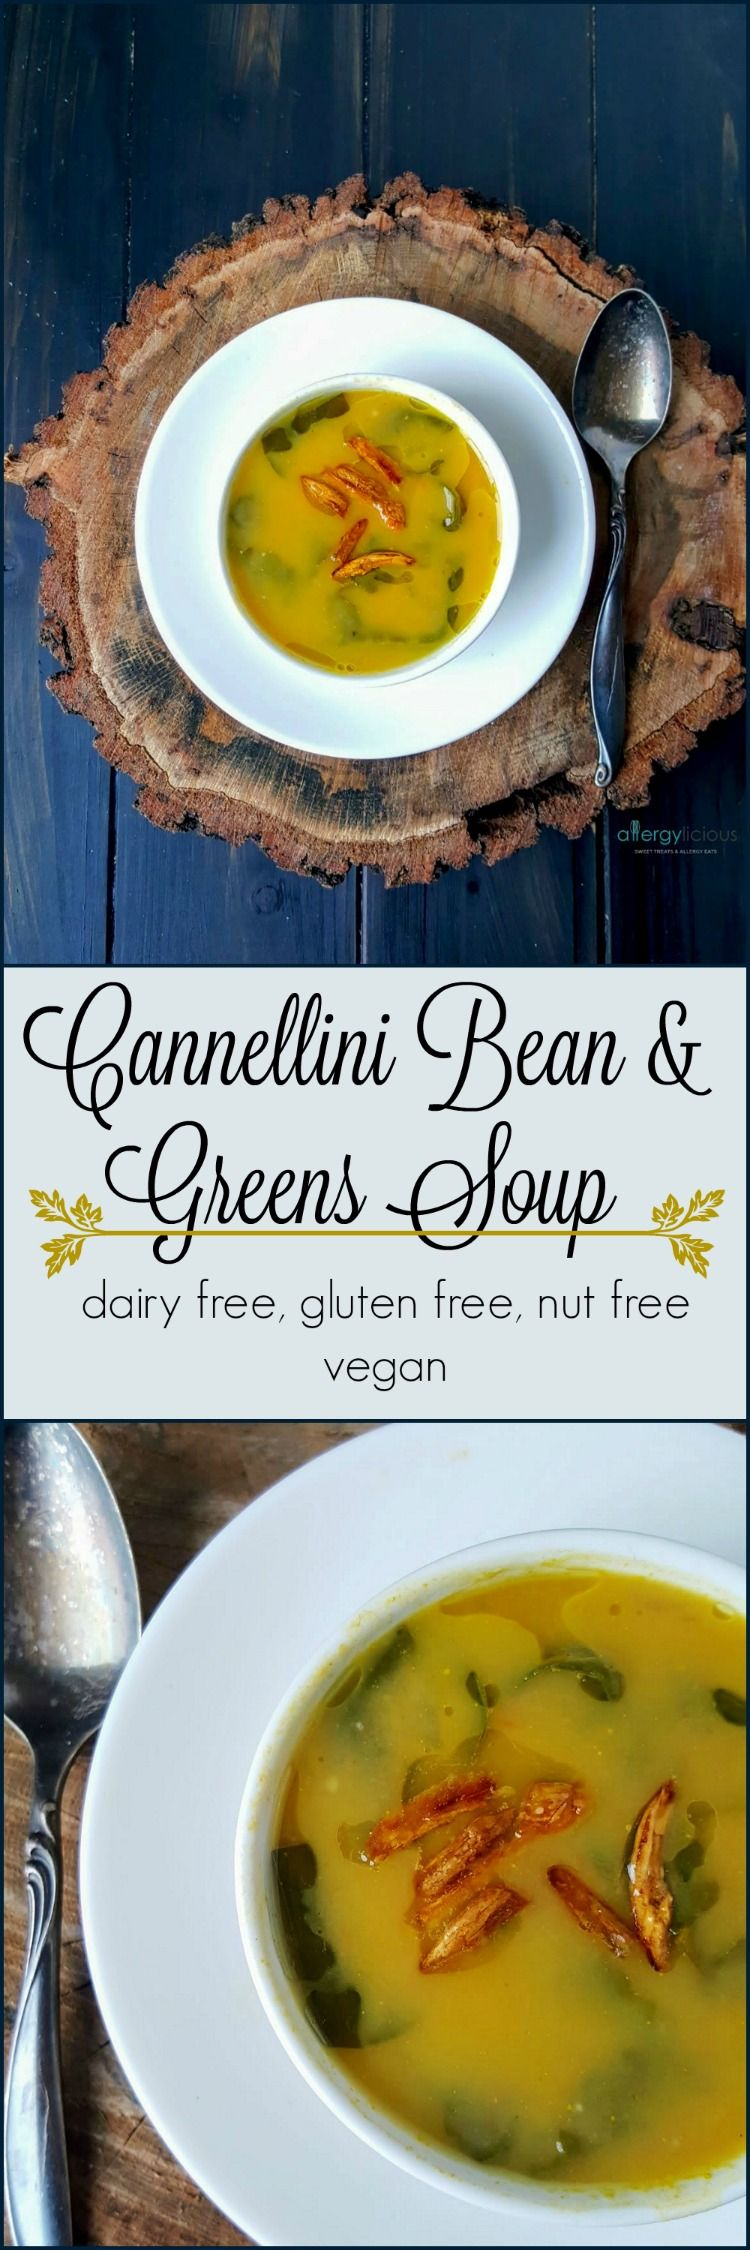 Puréed cannellini beans give this soup its velvety, rich texture without the need for cream while fresh greens ups the nutritional value. Vegan, Top 8 free, GF